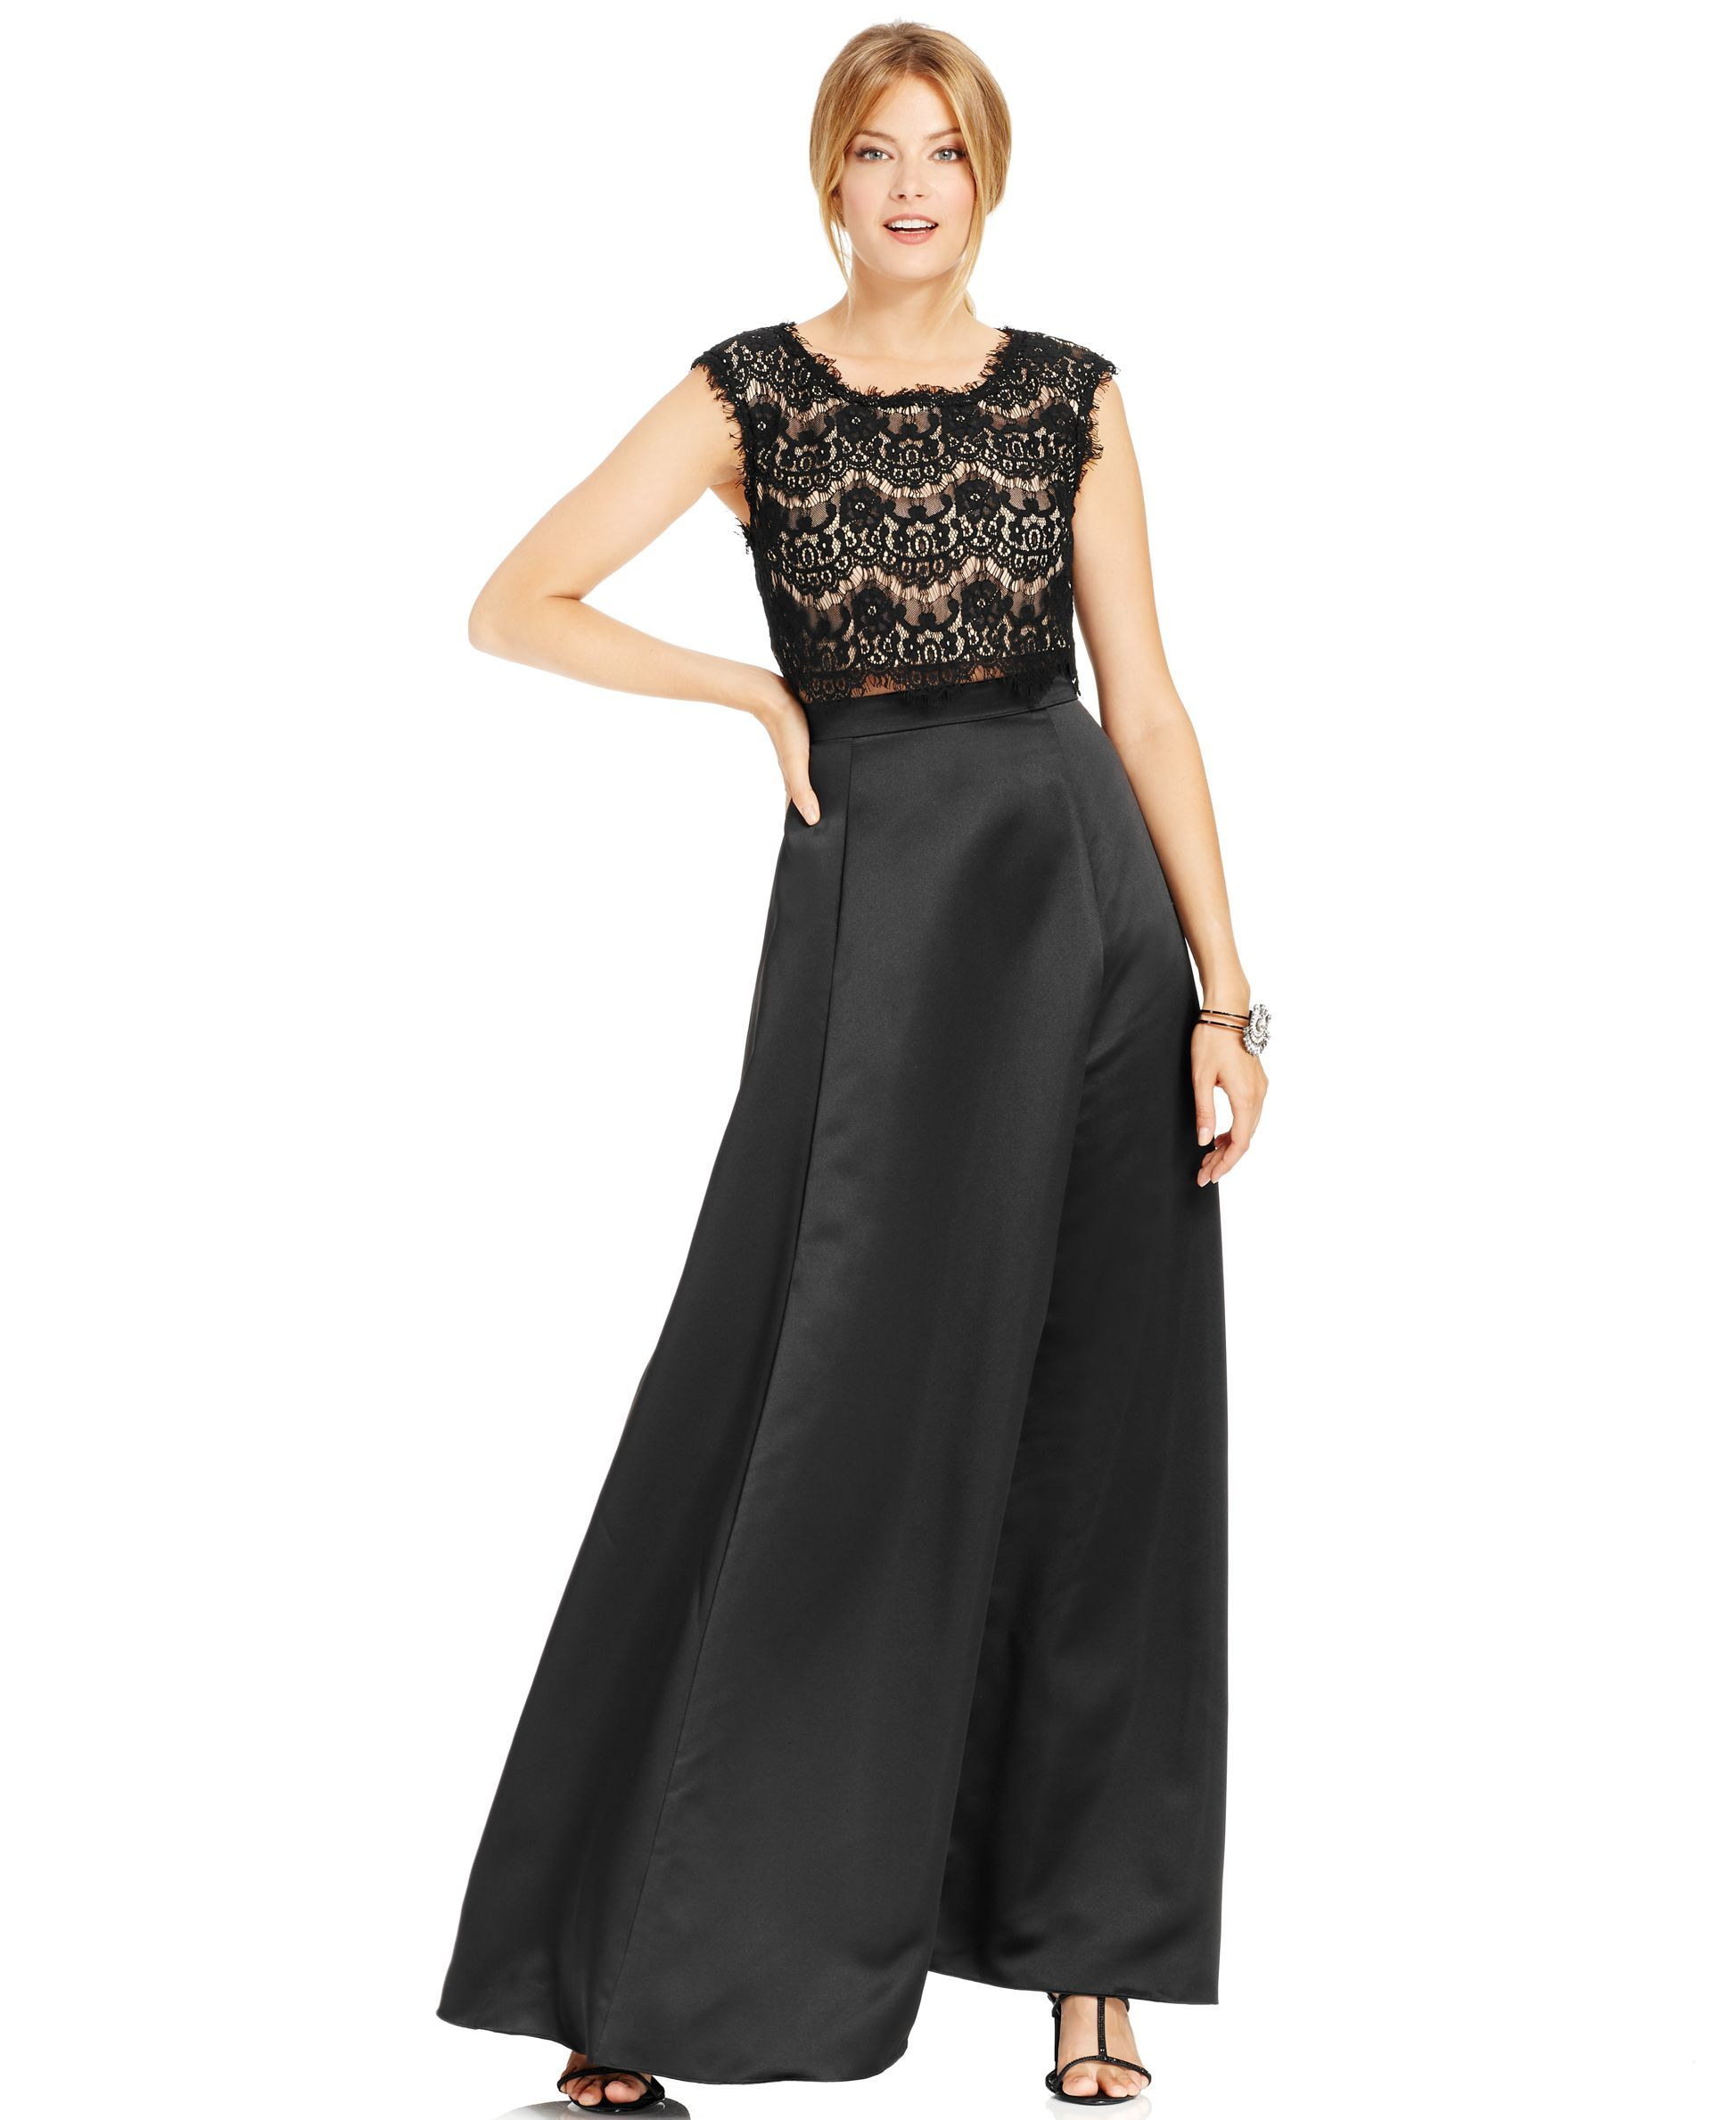 Betsy u adam mock twopiece lace ball gown products pinterest